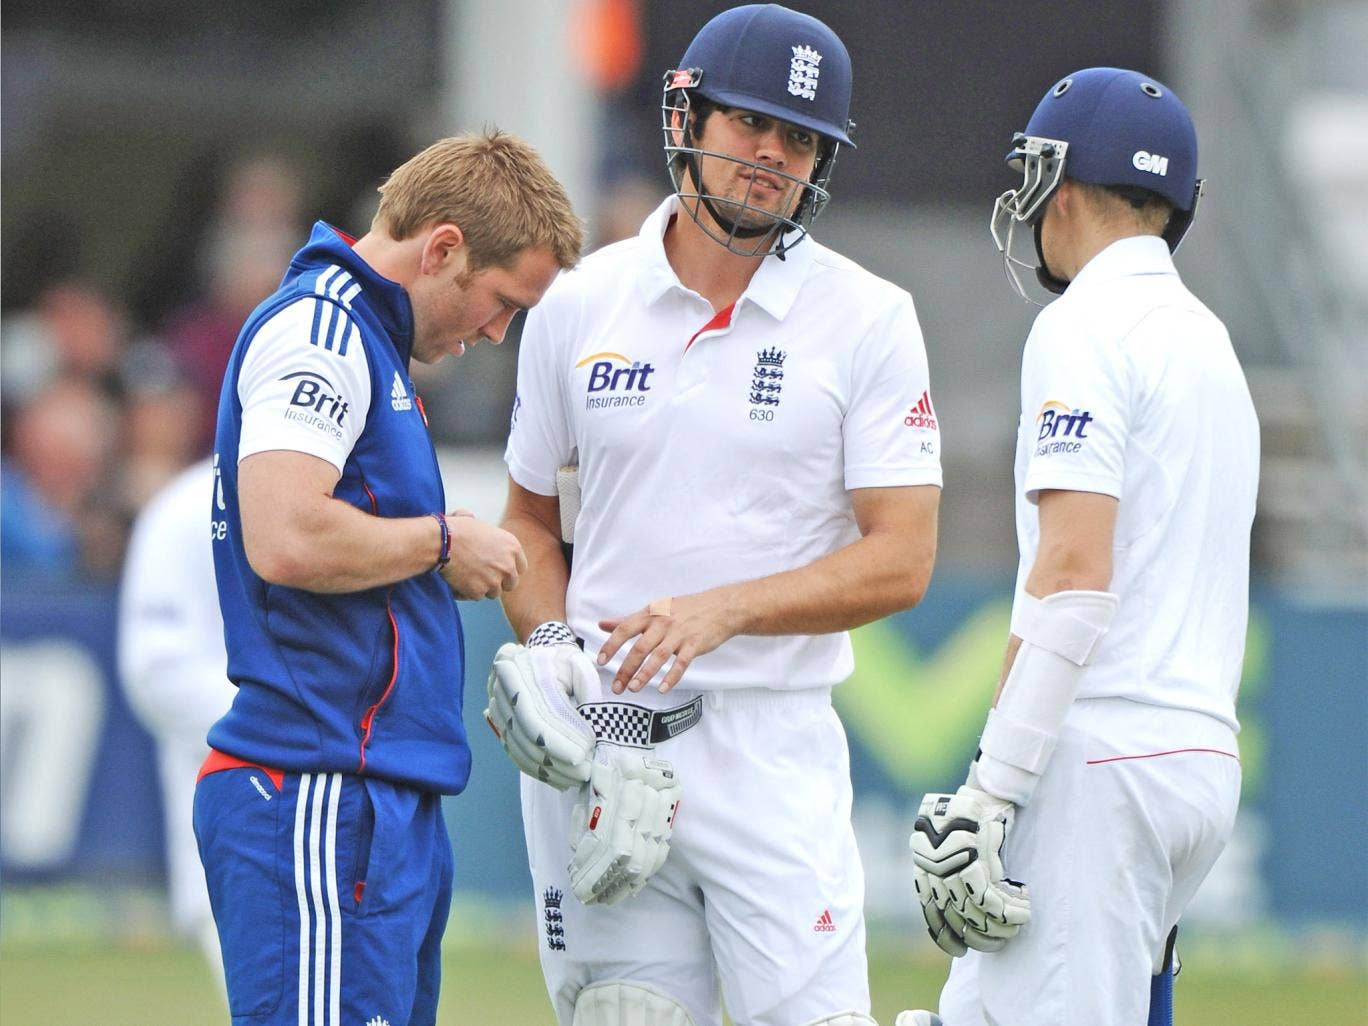 Alastair Cook is given treatment to a hand against Essex